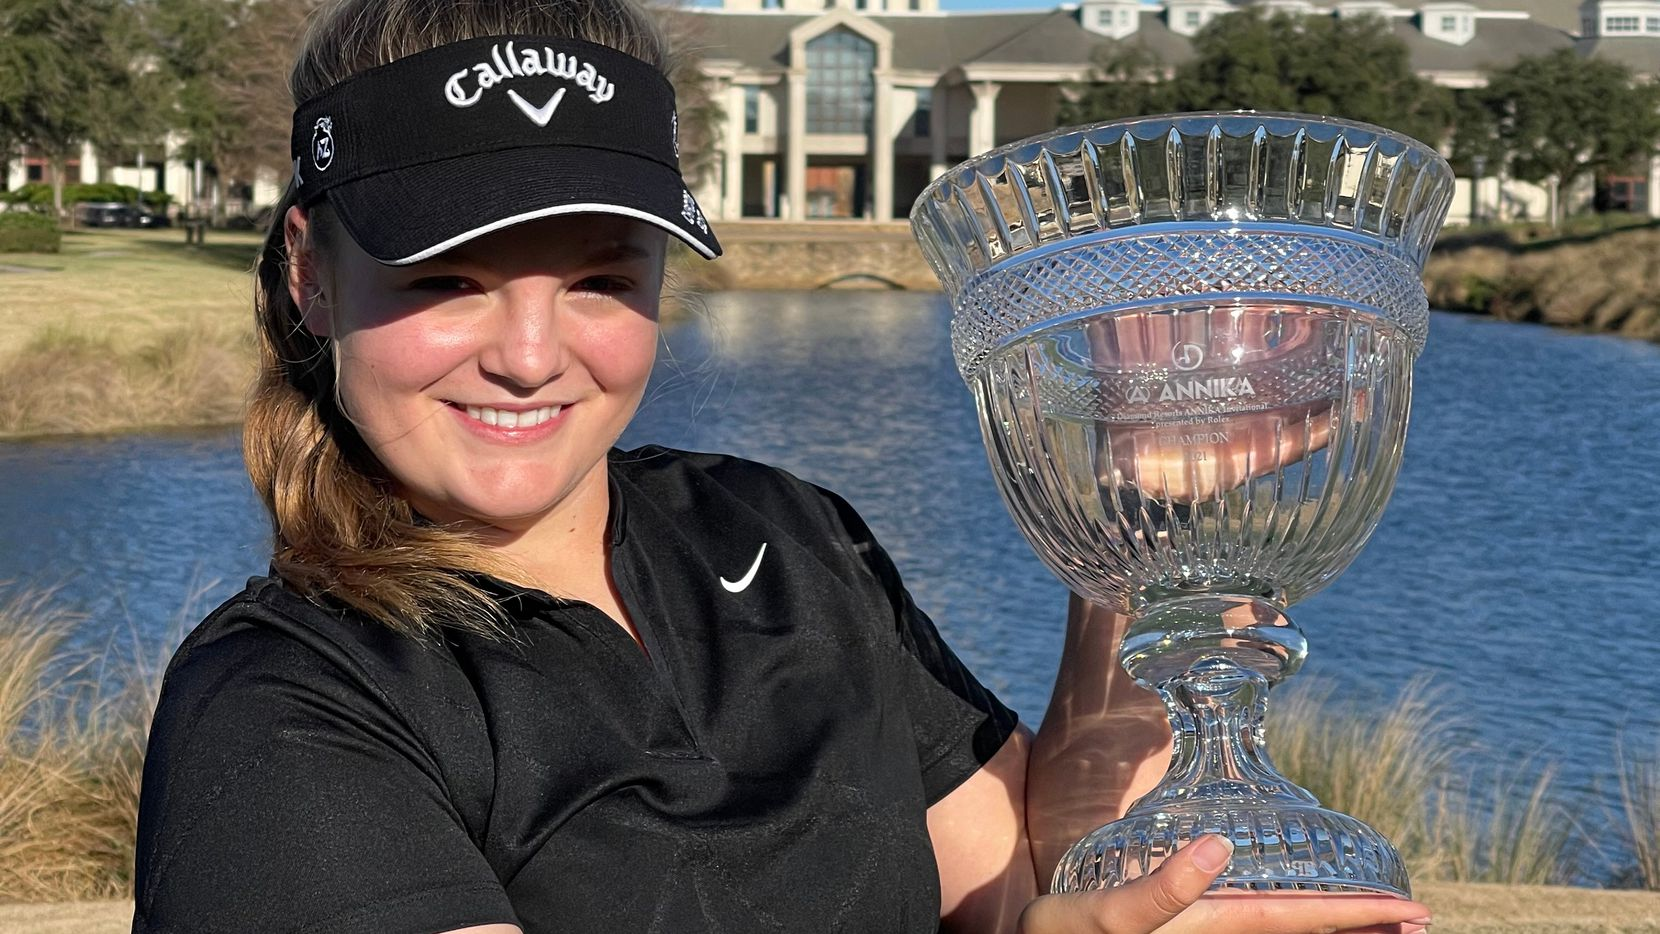 Avery Zweig holds up her trophy from the American Junior Golf Association's Annika Invitational.